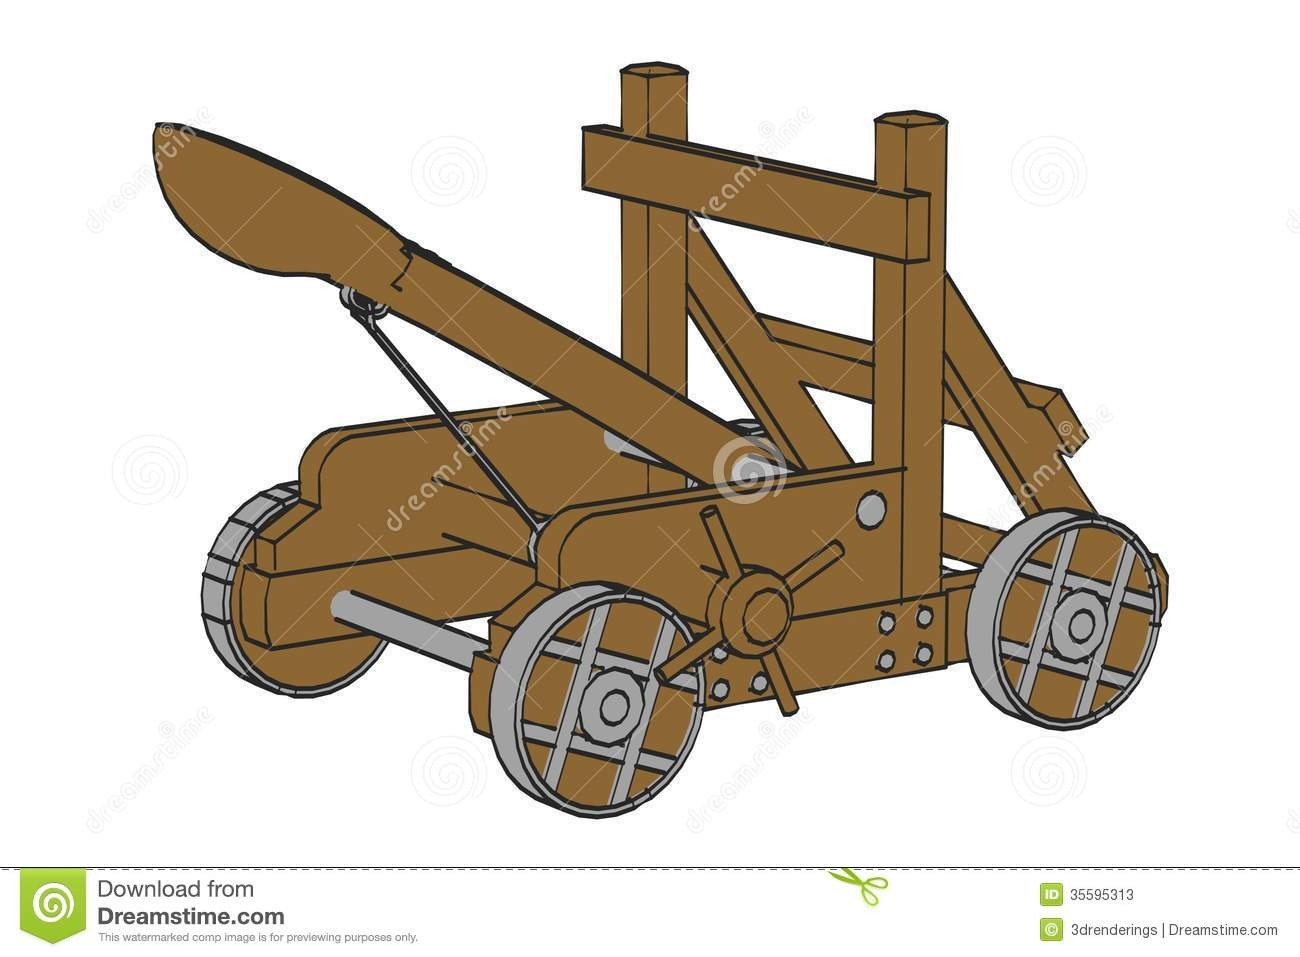 Clipart catapult clip art free download With Clipart Of A Catapult Stock Illustrations 448 | Clip Art clip art free download